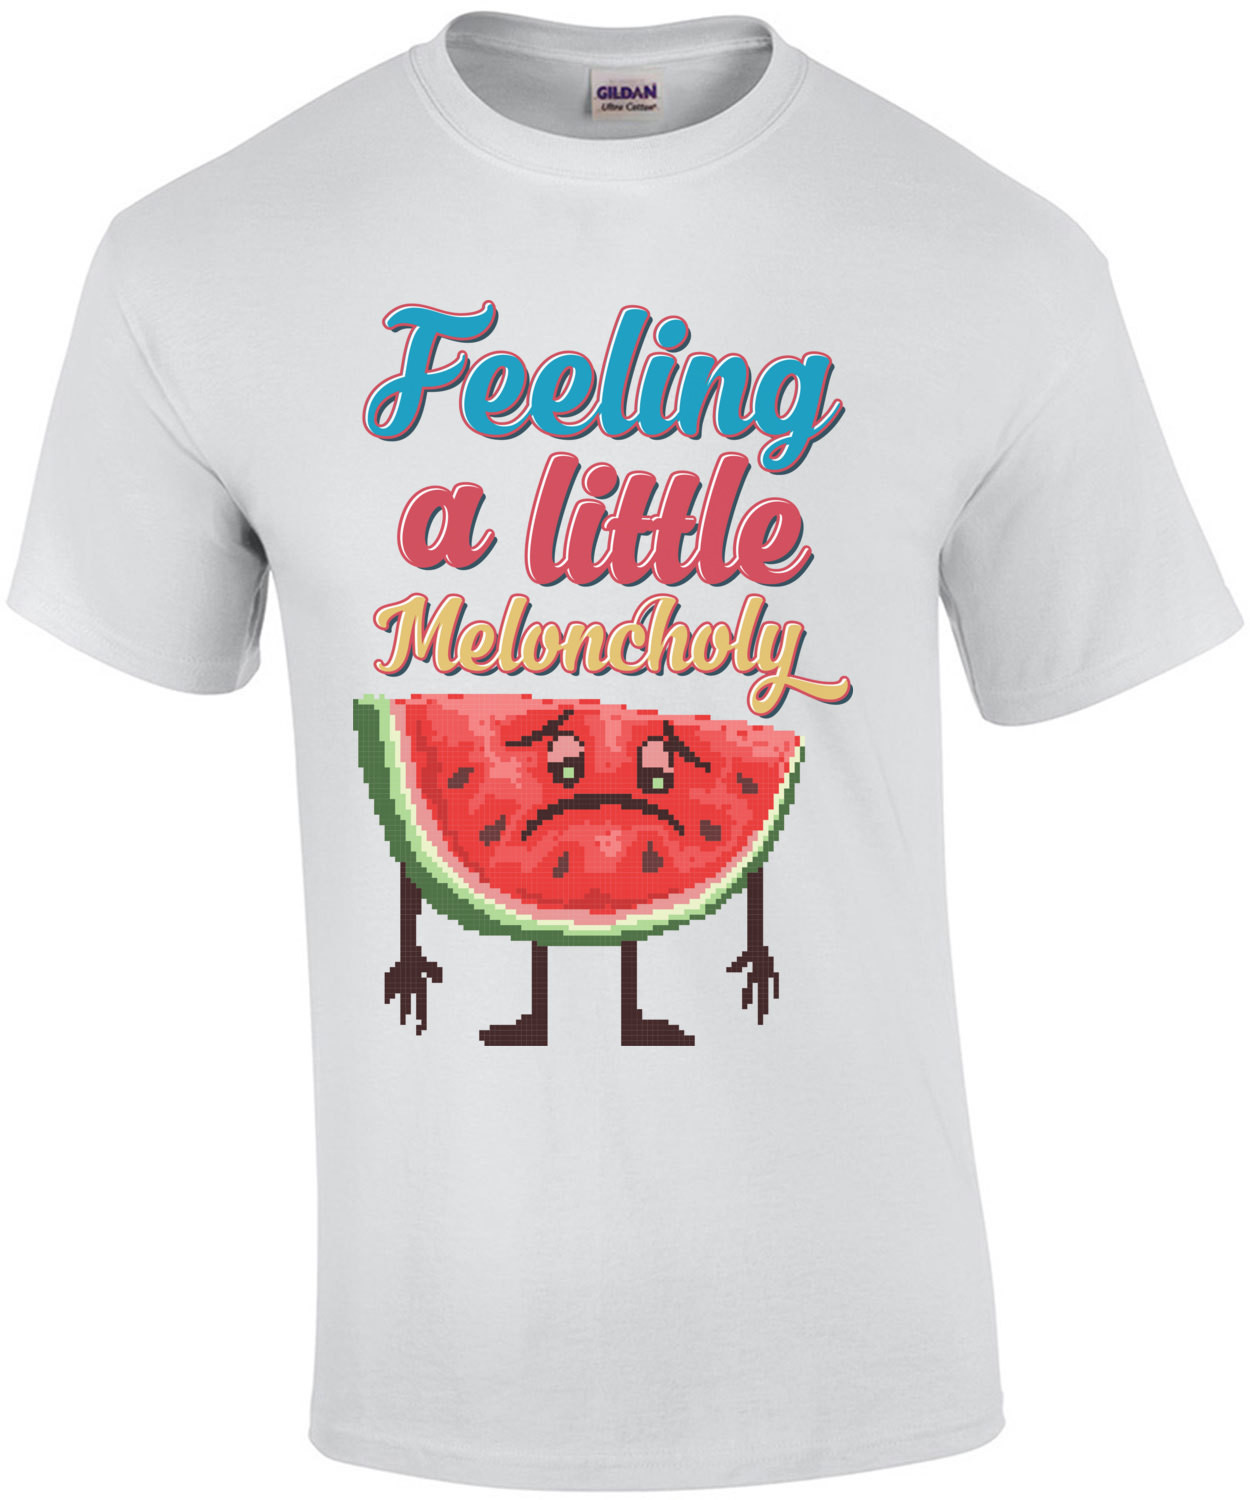 Feeling A Little Meloncholy Retro T-Shirt